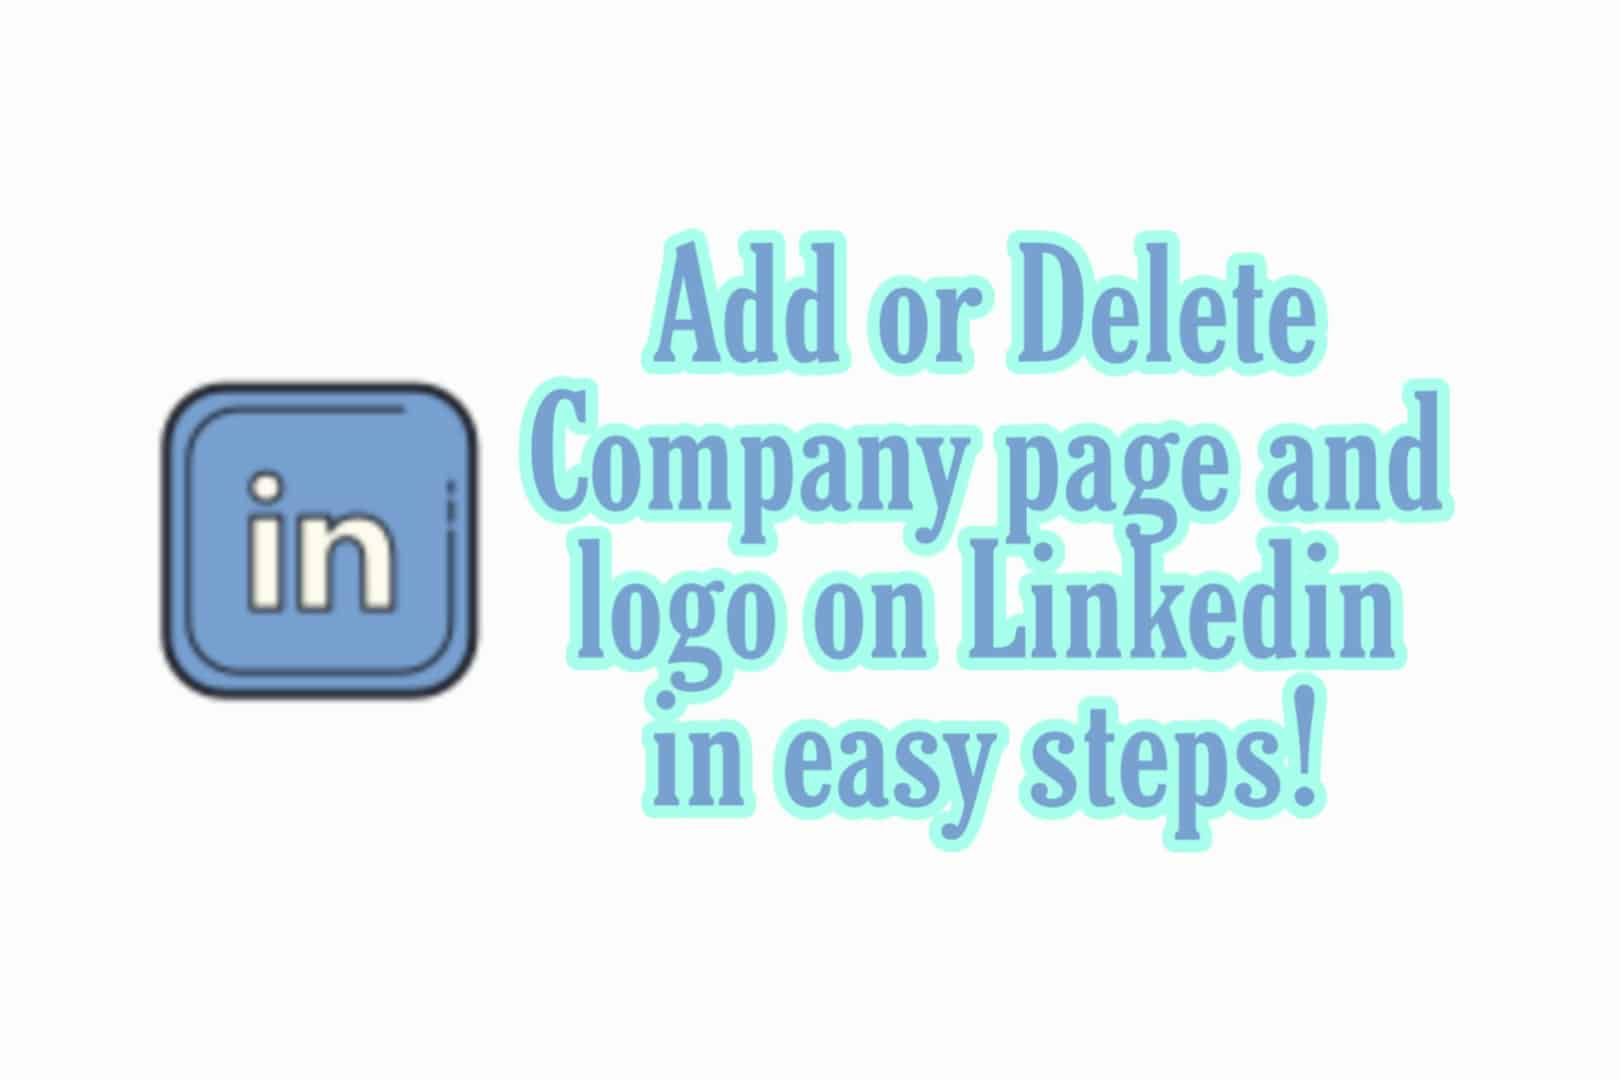 How to add or delete LinkedIn company page, logo and many more!